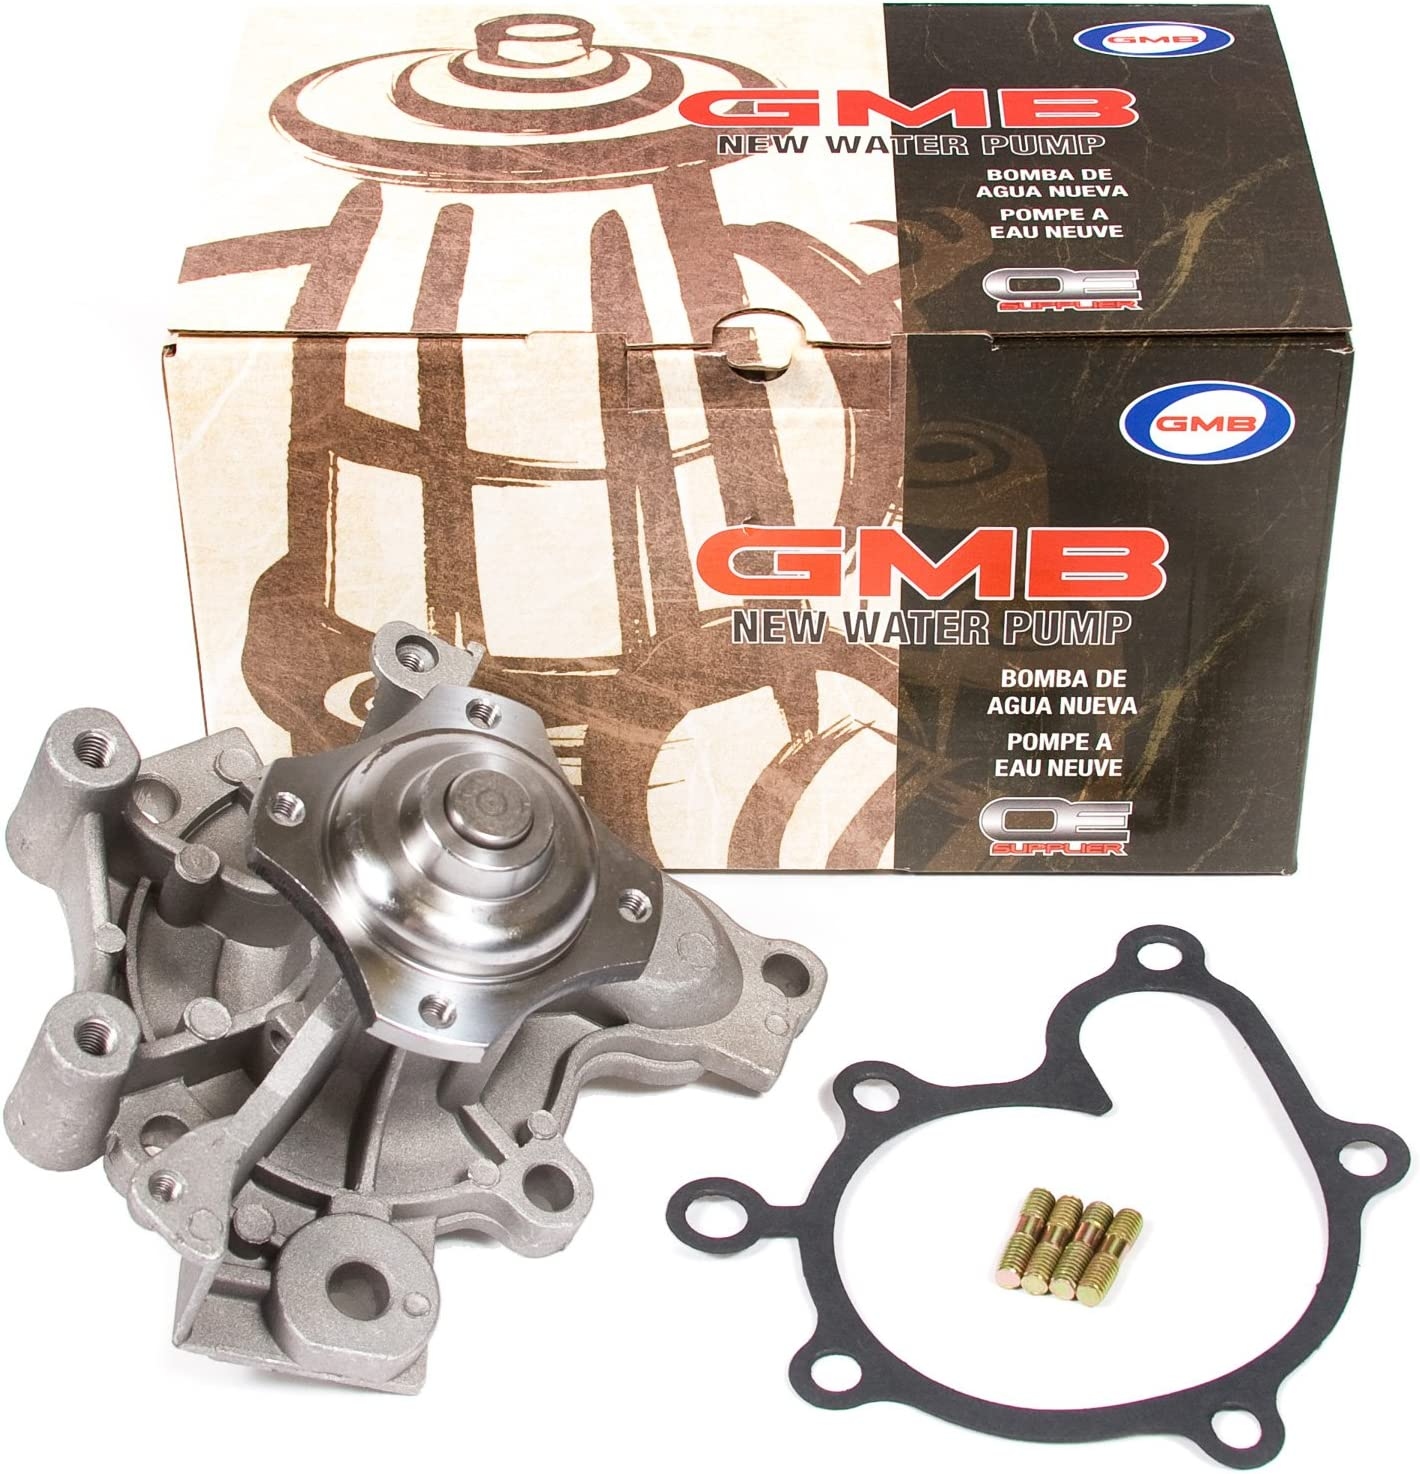 GATES Engine Water Pump for Mazda Protege5 2002-2003